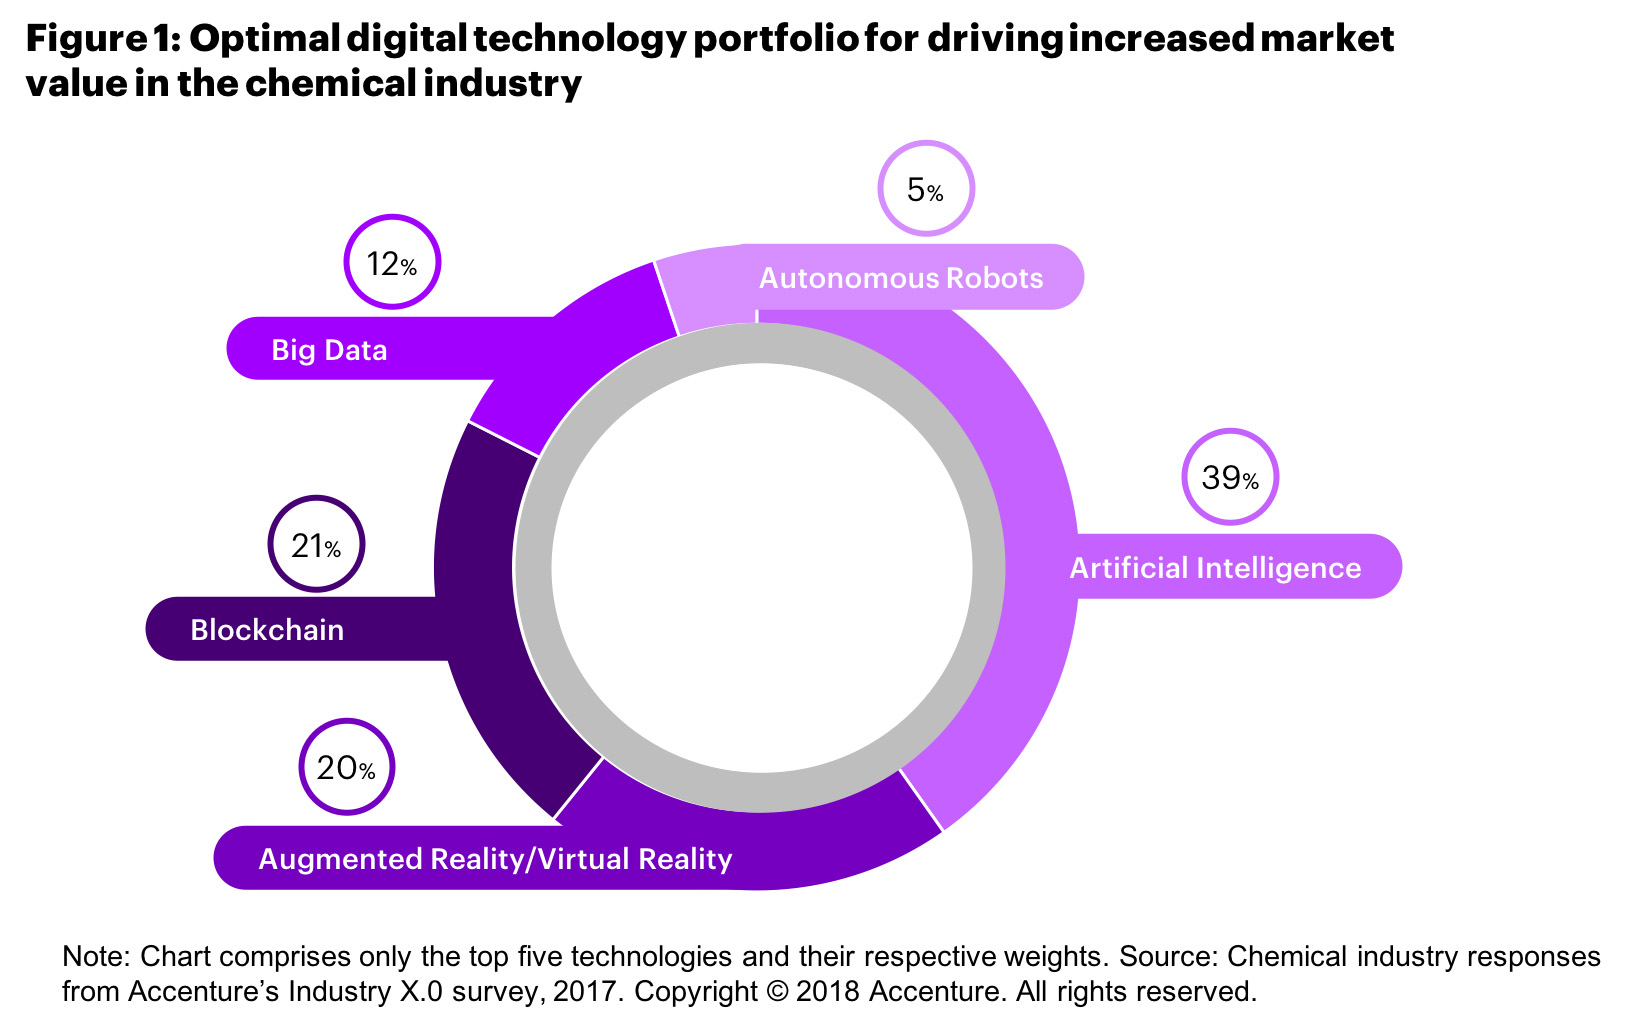 Figure 1 shows the top five technologies for driving increased market value in the chemical industry, including AI at 39%, blockchain comprises 21%, augmented reality and virtual reality make up 20%, big data is 12% and autonomous robots are 5%.